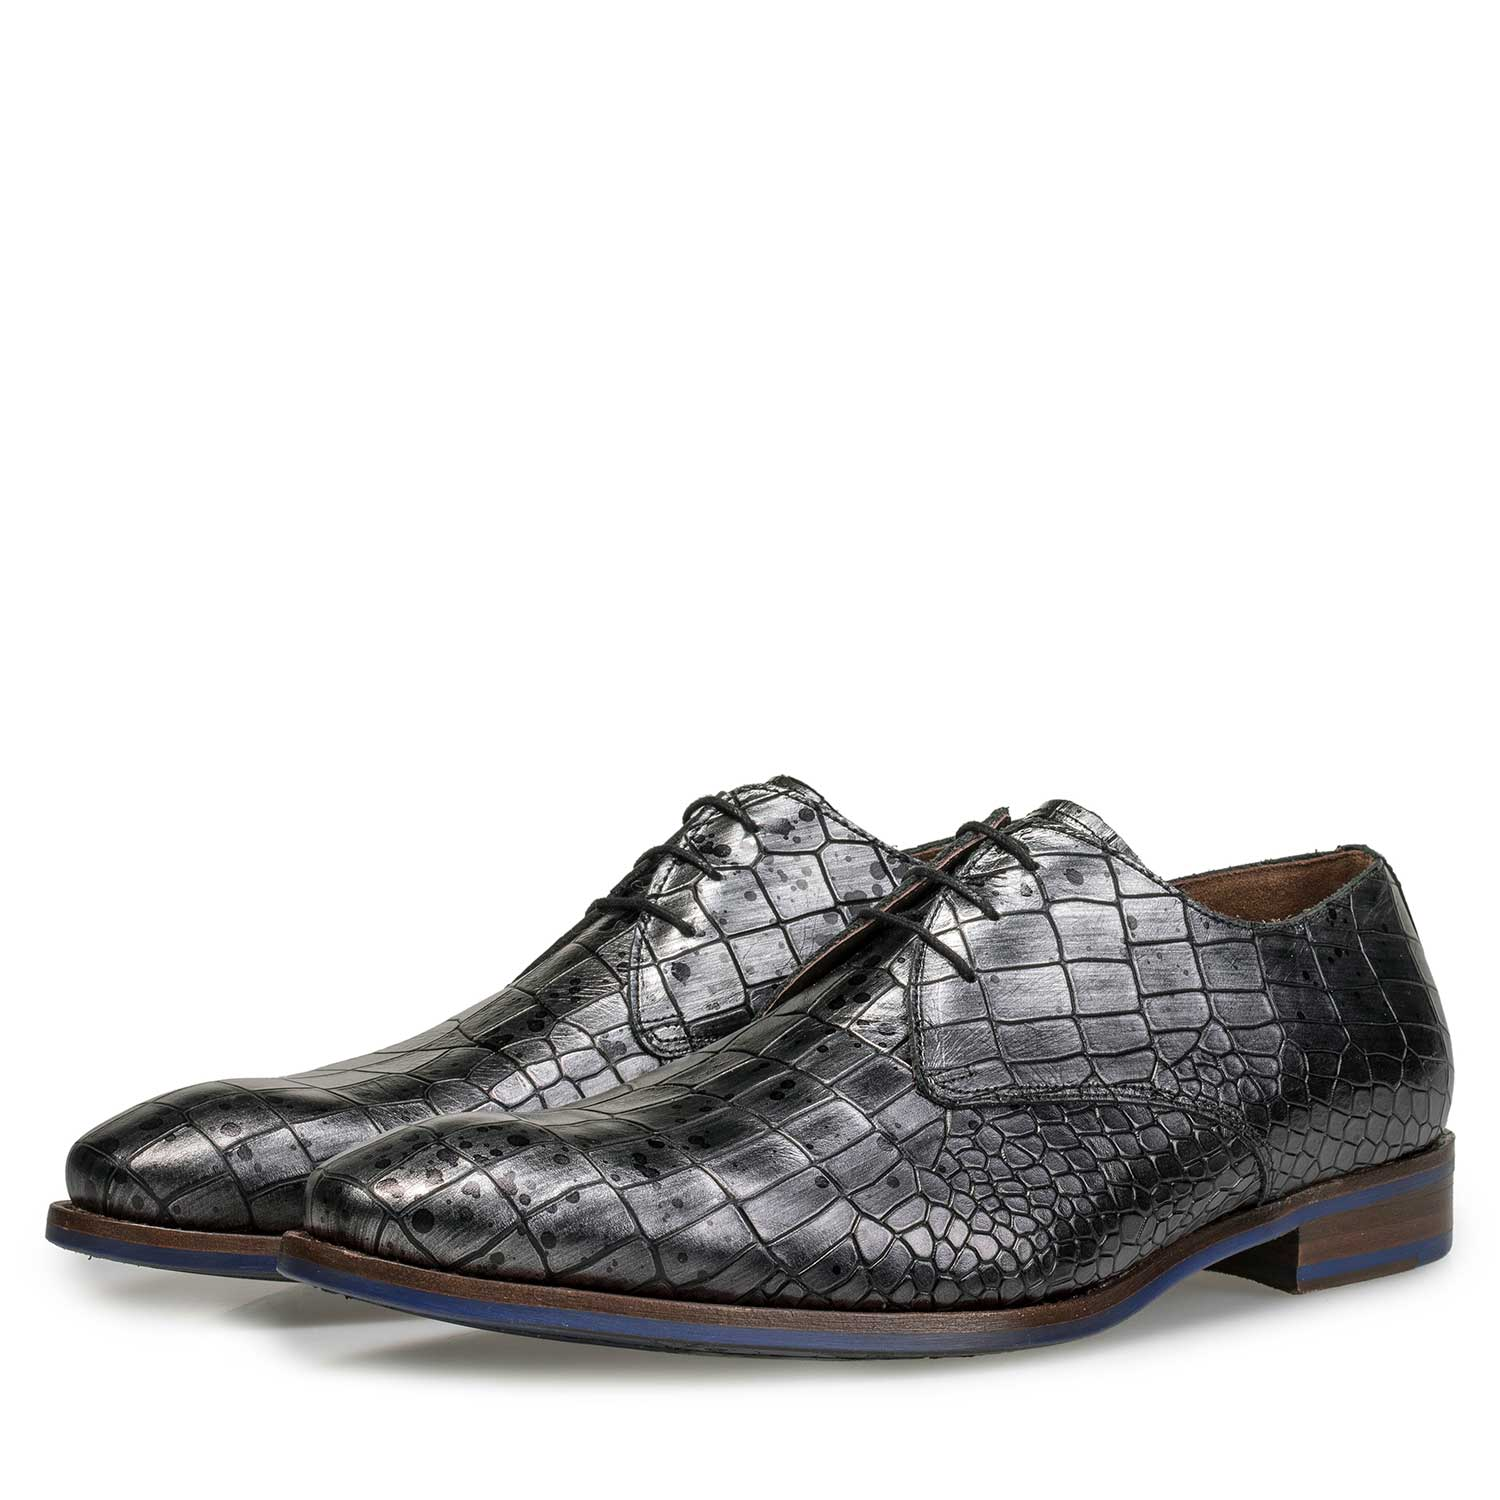 18067/01 - Grey leather lace shoe with croco print